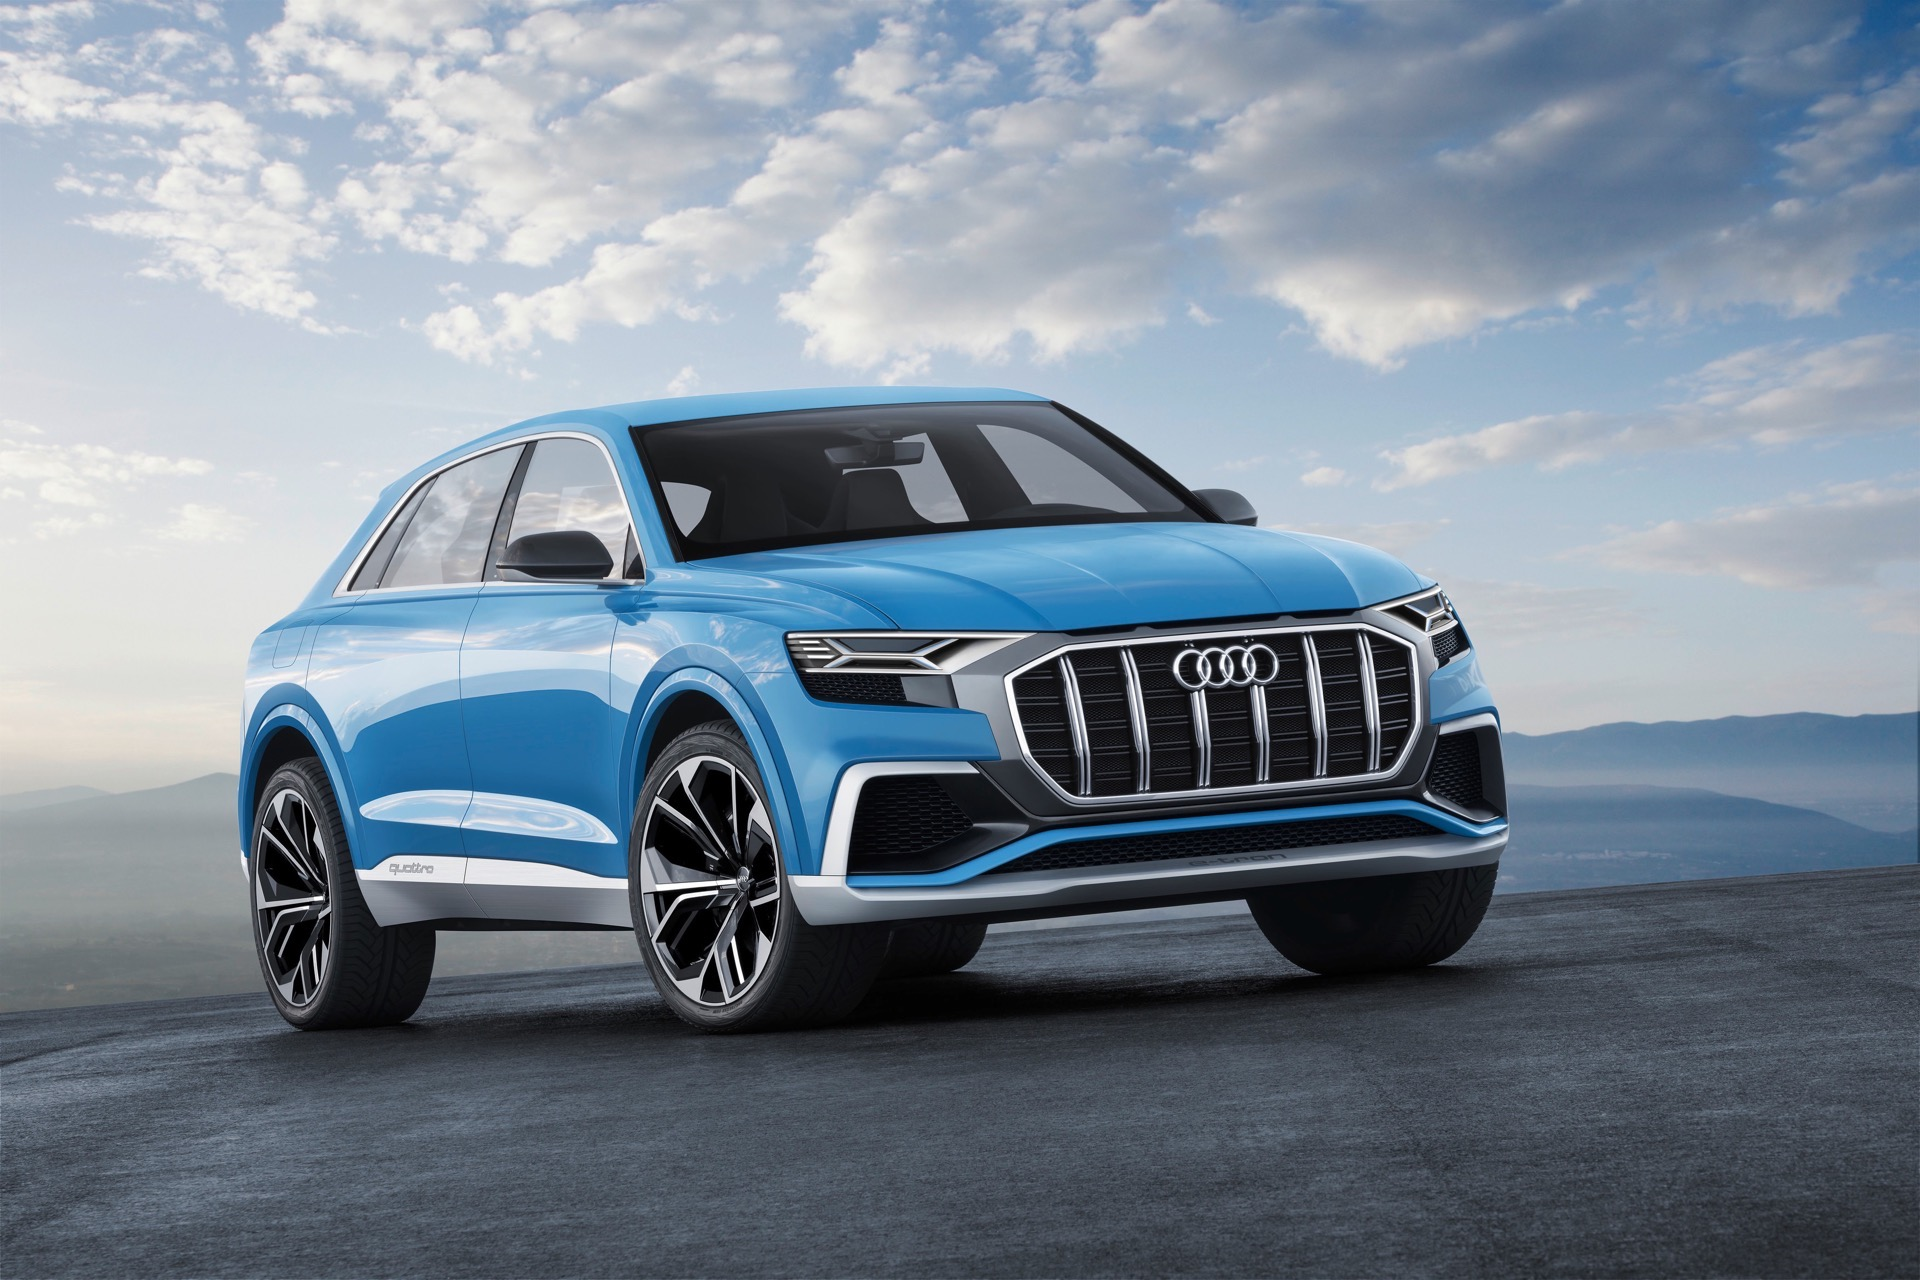 2018 audi q8 concept shows off hybrid powertrain. Black Bedroom Furniture Sets. Home Design Ideas